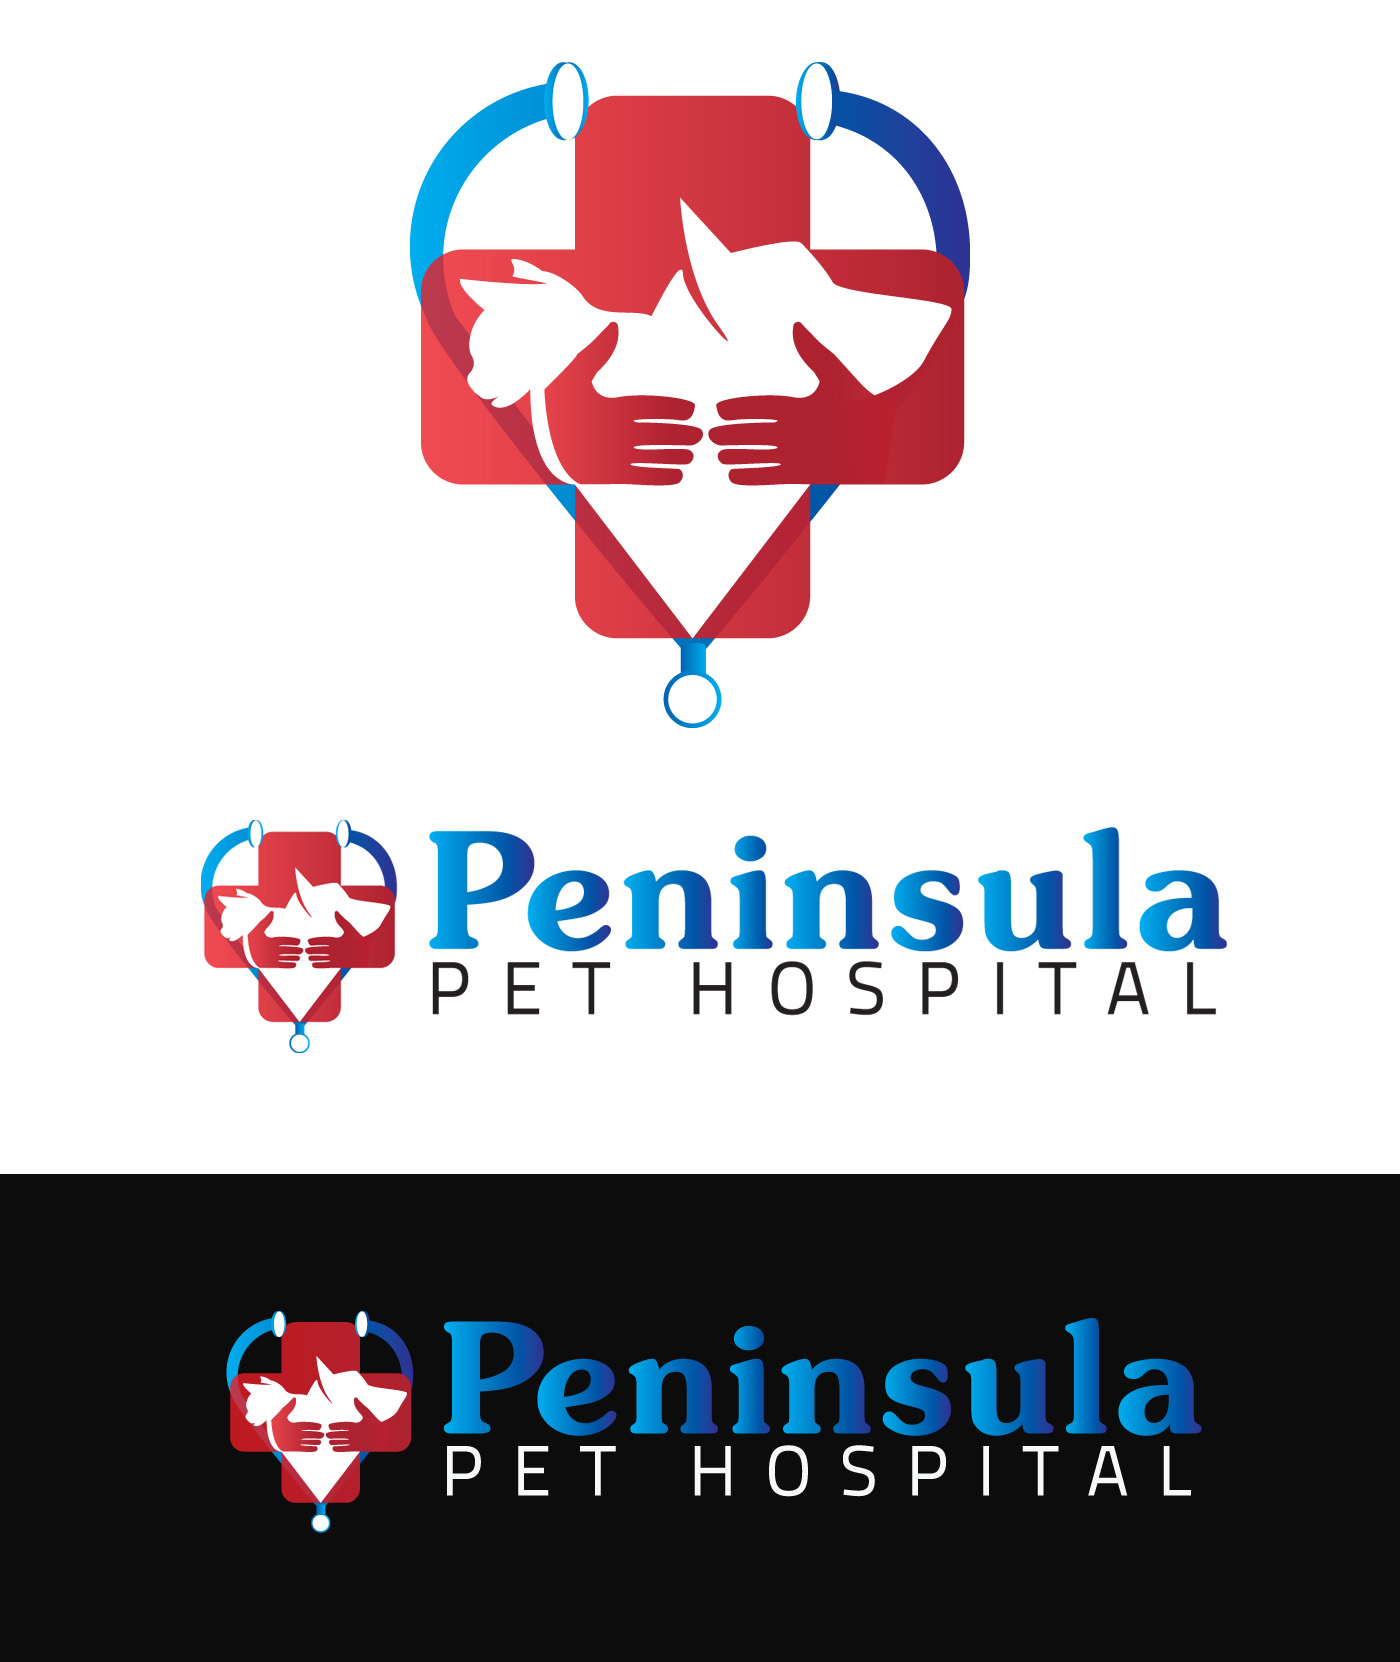 Logo Design by Manufaktura - Entry No. 158 in the Logo Design Contest Creative Logo Design for Peninsula Pet Hospital.